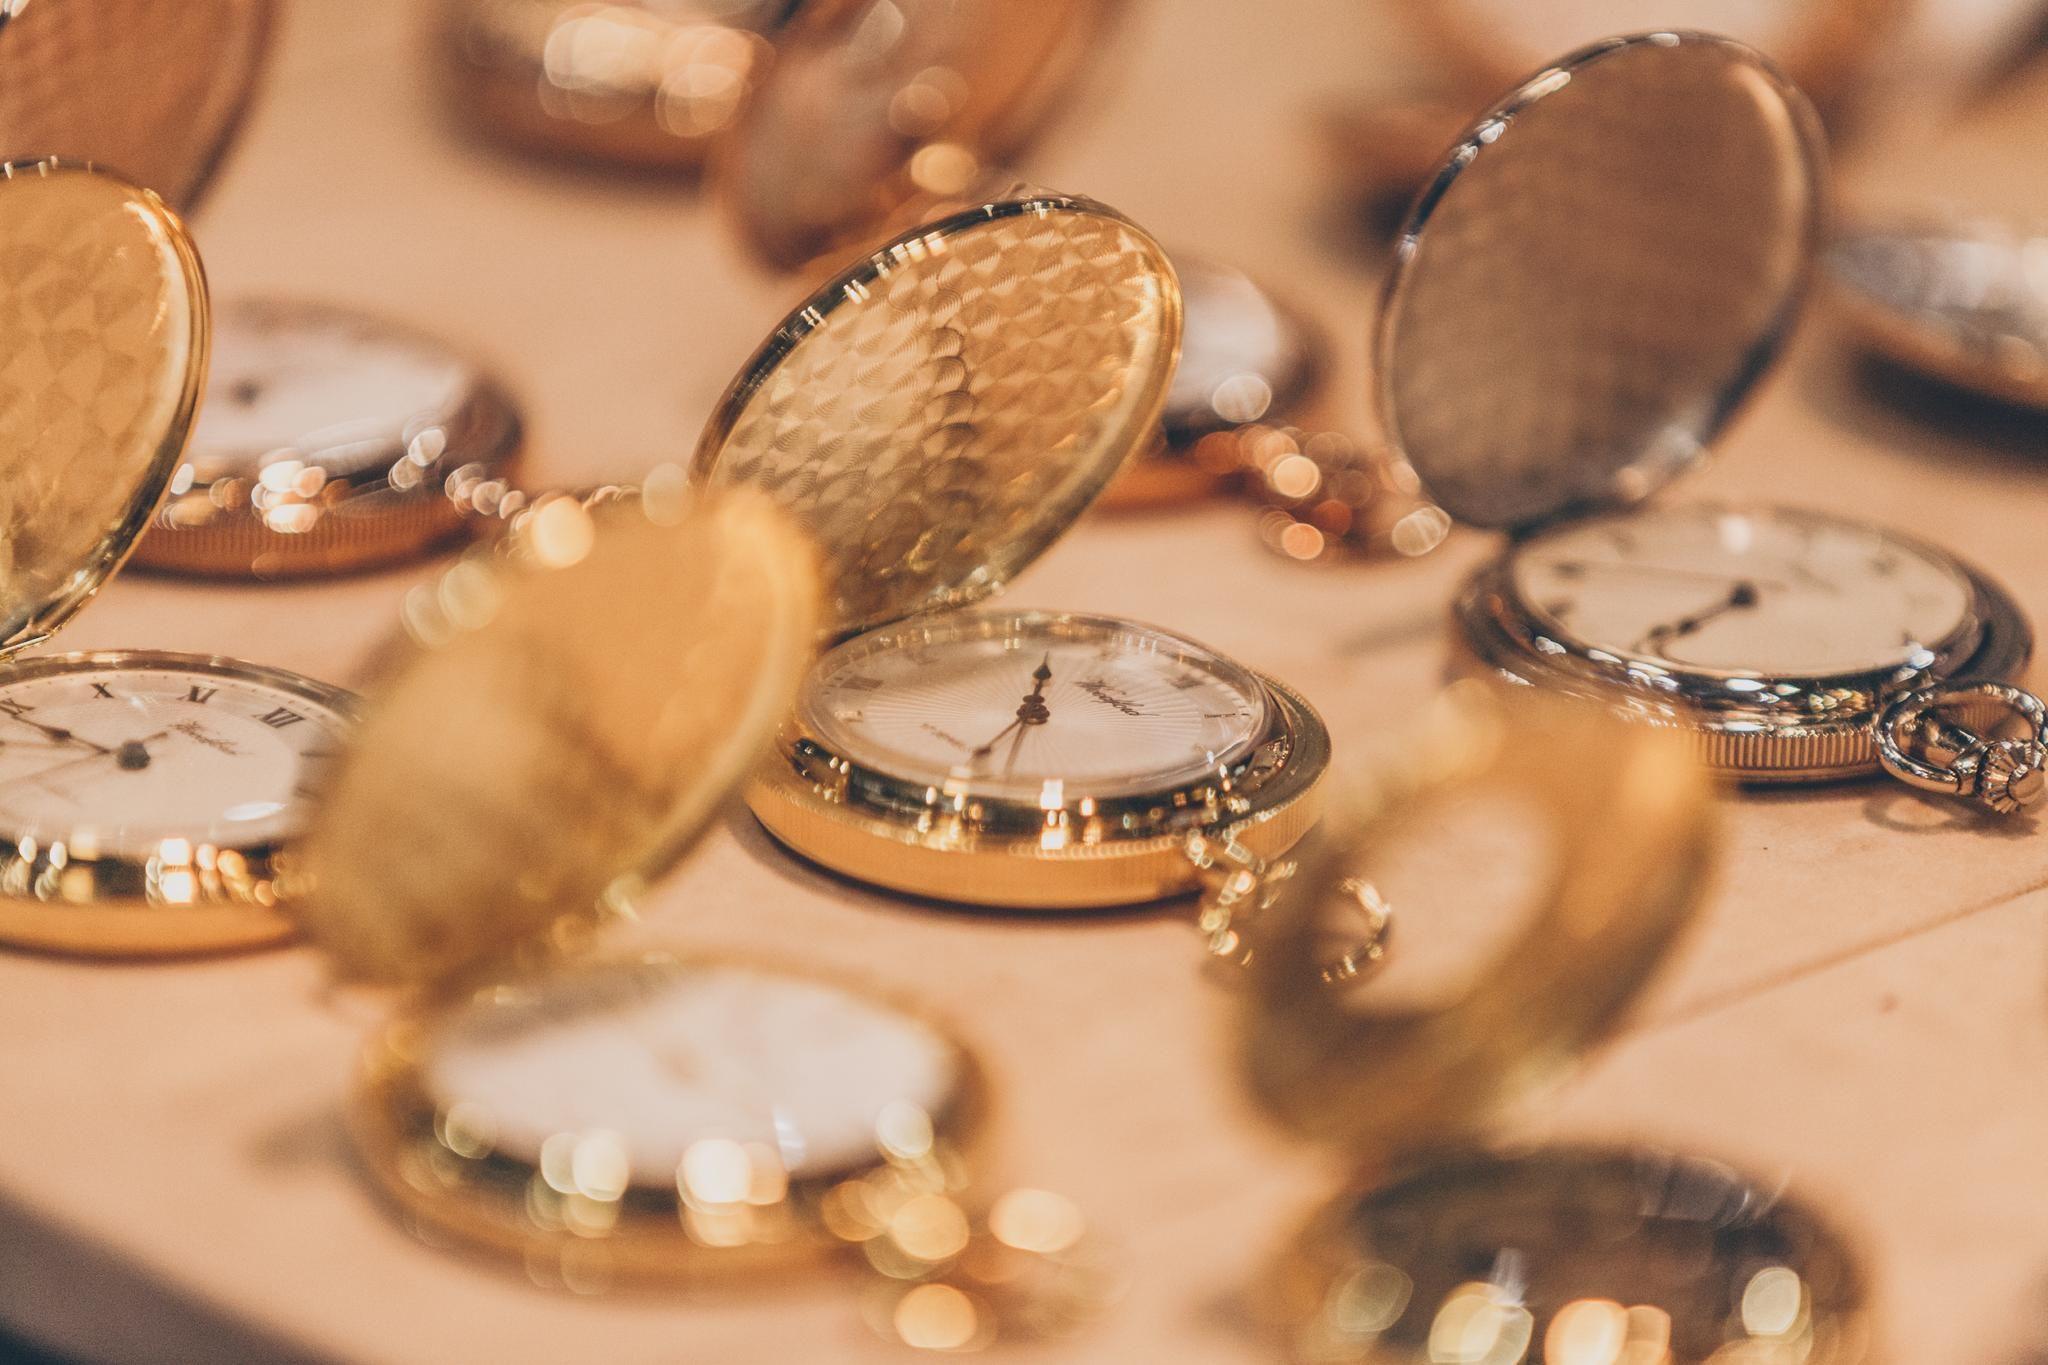 jewellery and watch open pocket watches